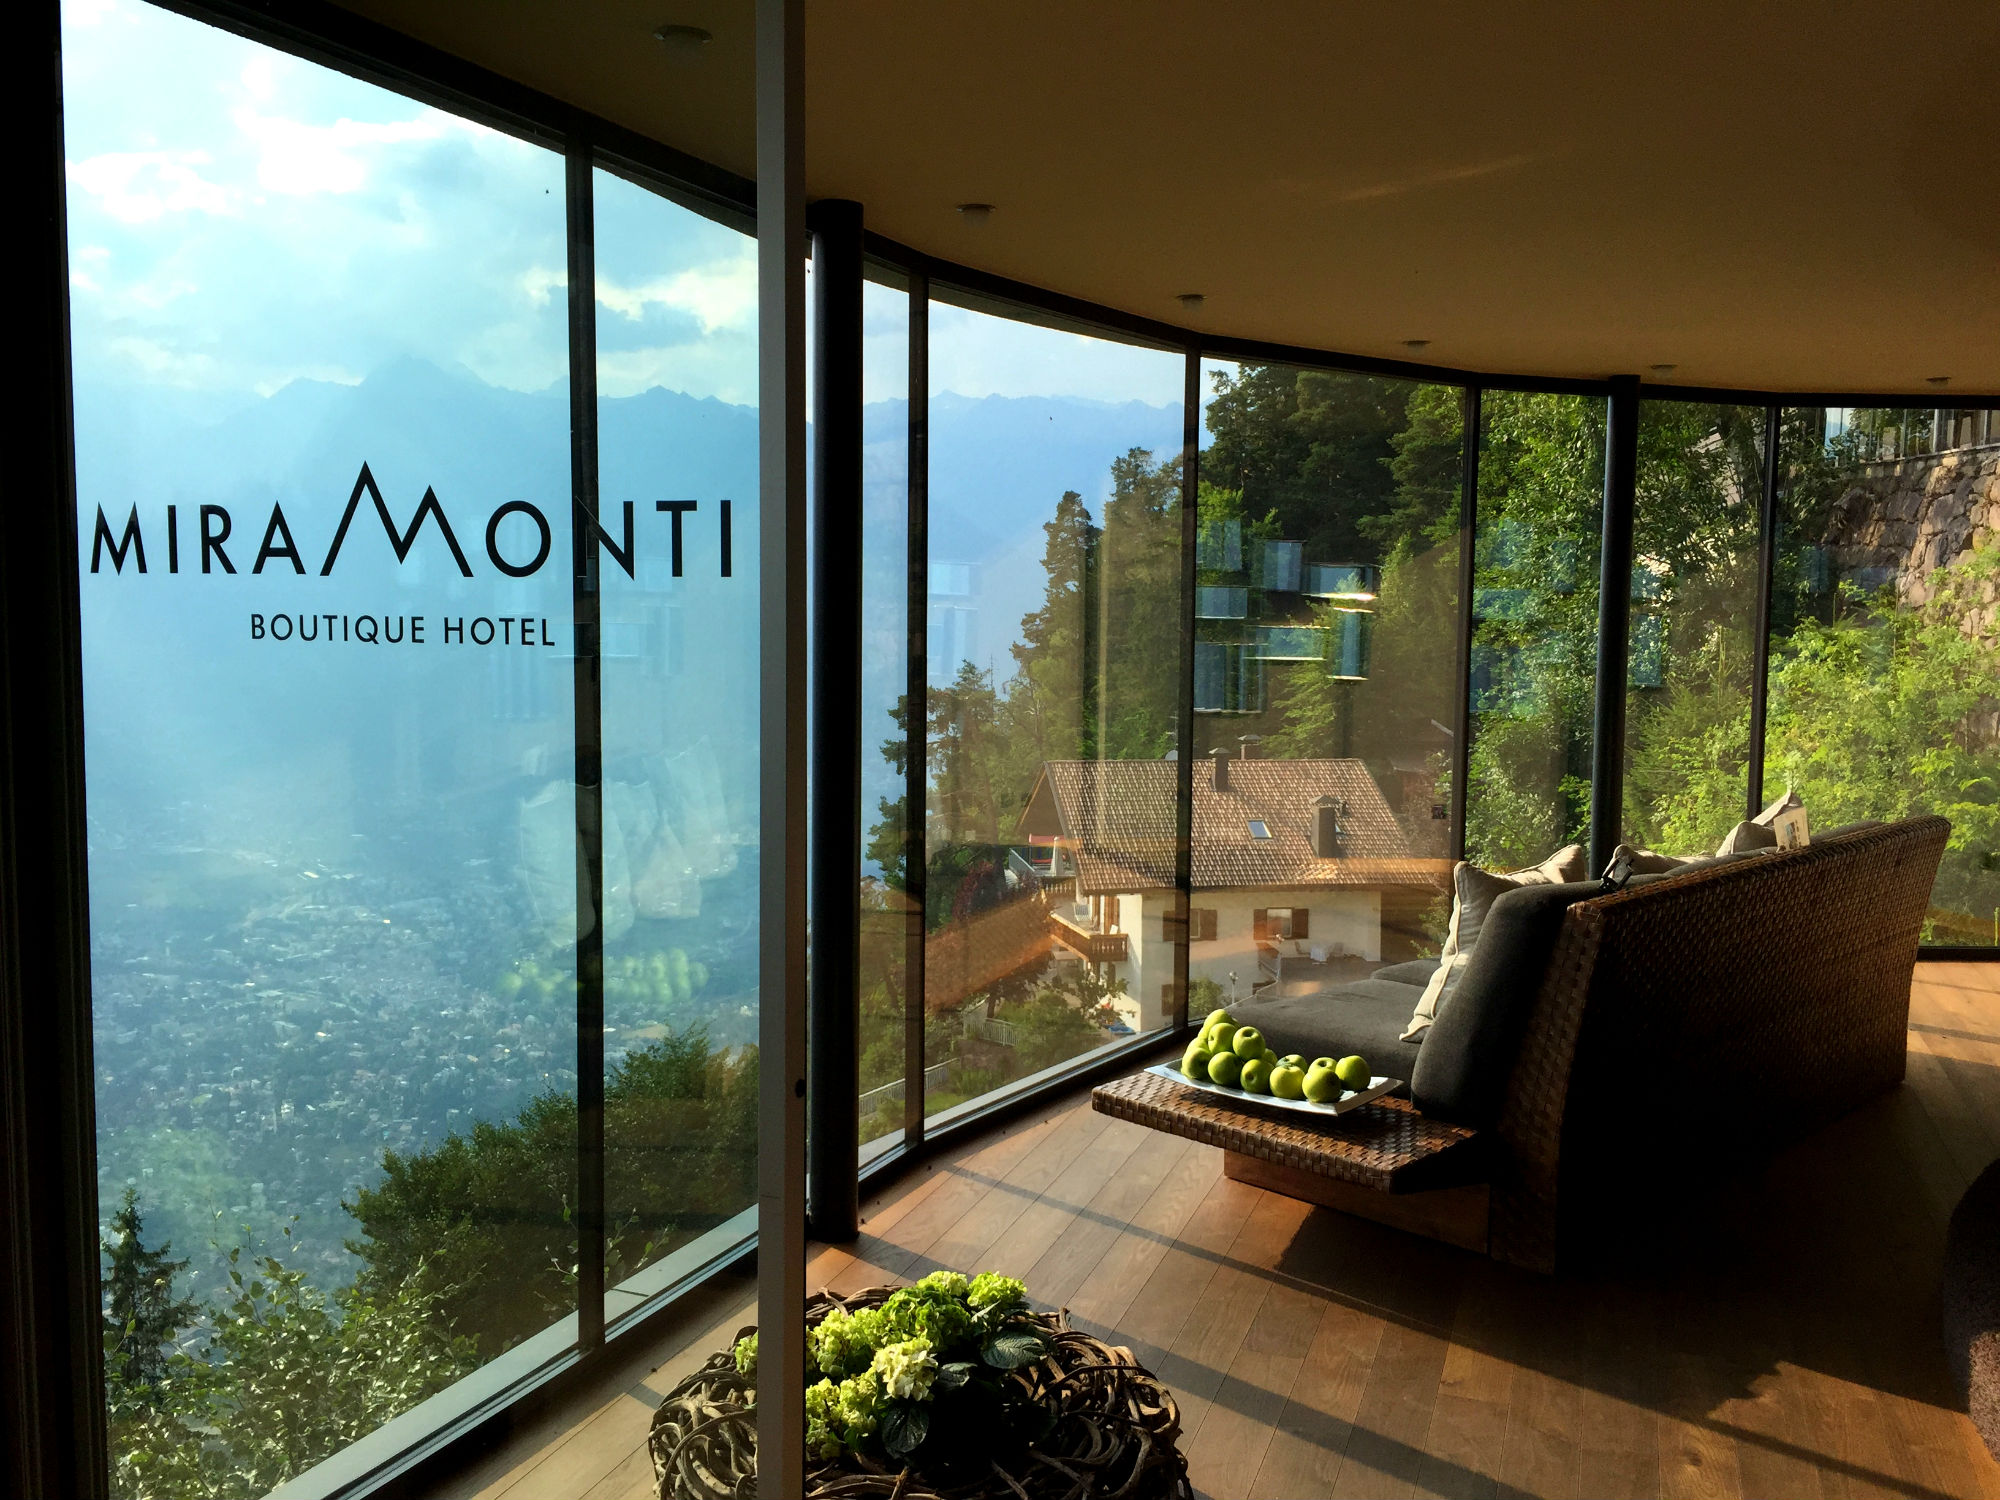 Miramonti boutique hotel in s dtirol hotelreview for Boutique hotel deutschland